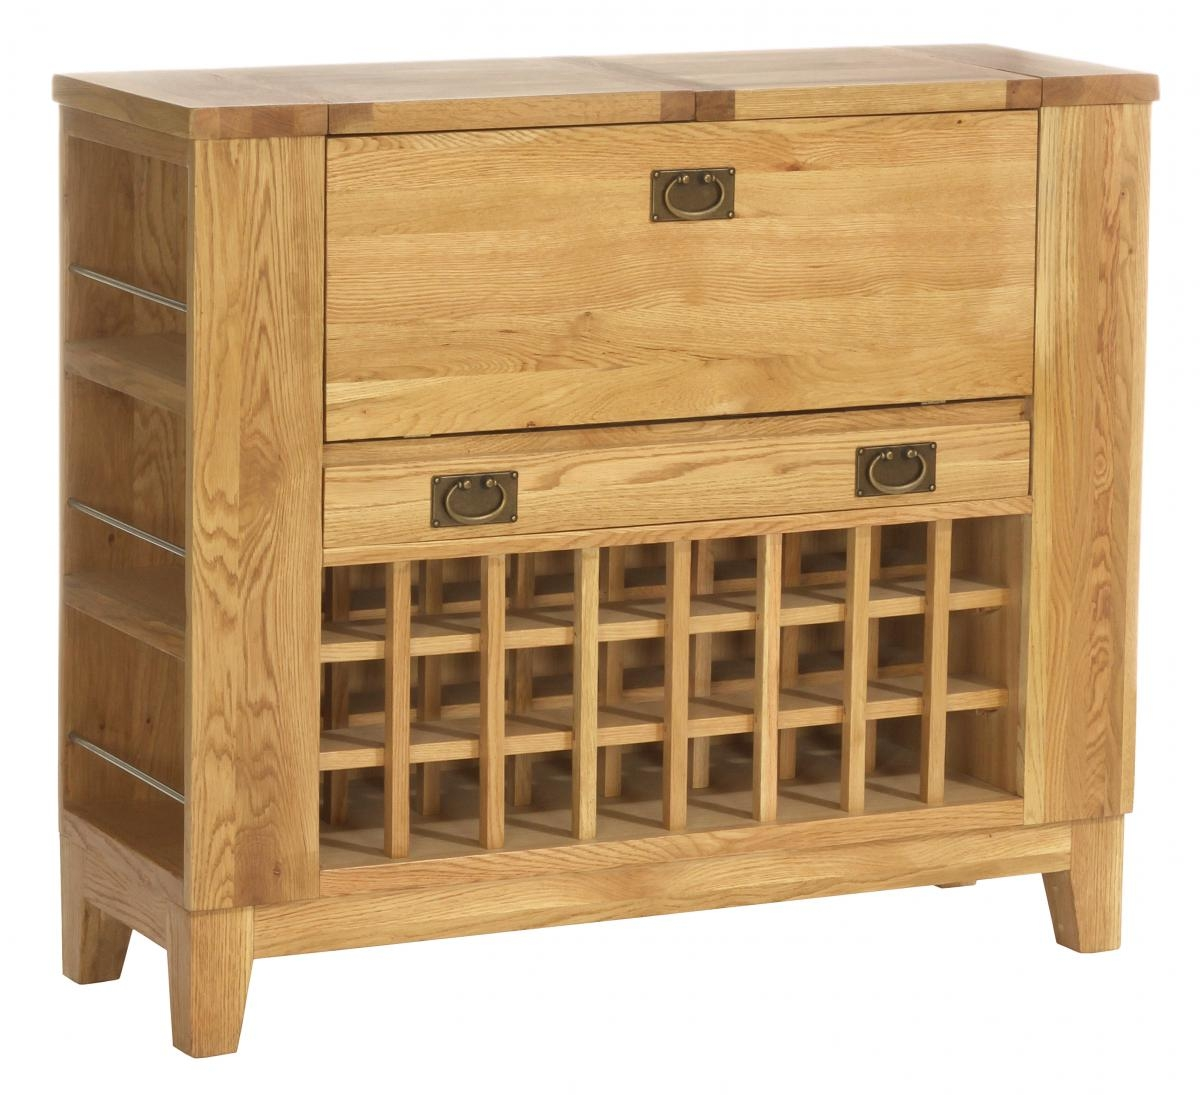 Vancouver Petite Oak Drinks Cabinet Compact Besp Oak : 3 Vancouver Petite Oak Drinks Cabinet Compact from choicefurnituresuperstore.co.uk size 1200 x 1095 jpeg 391kB